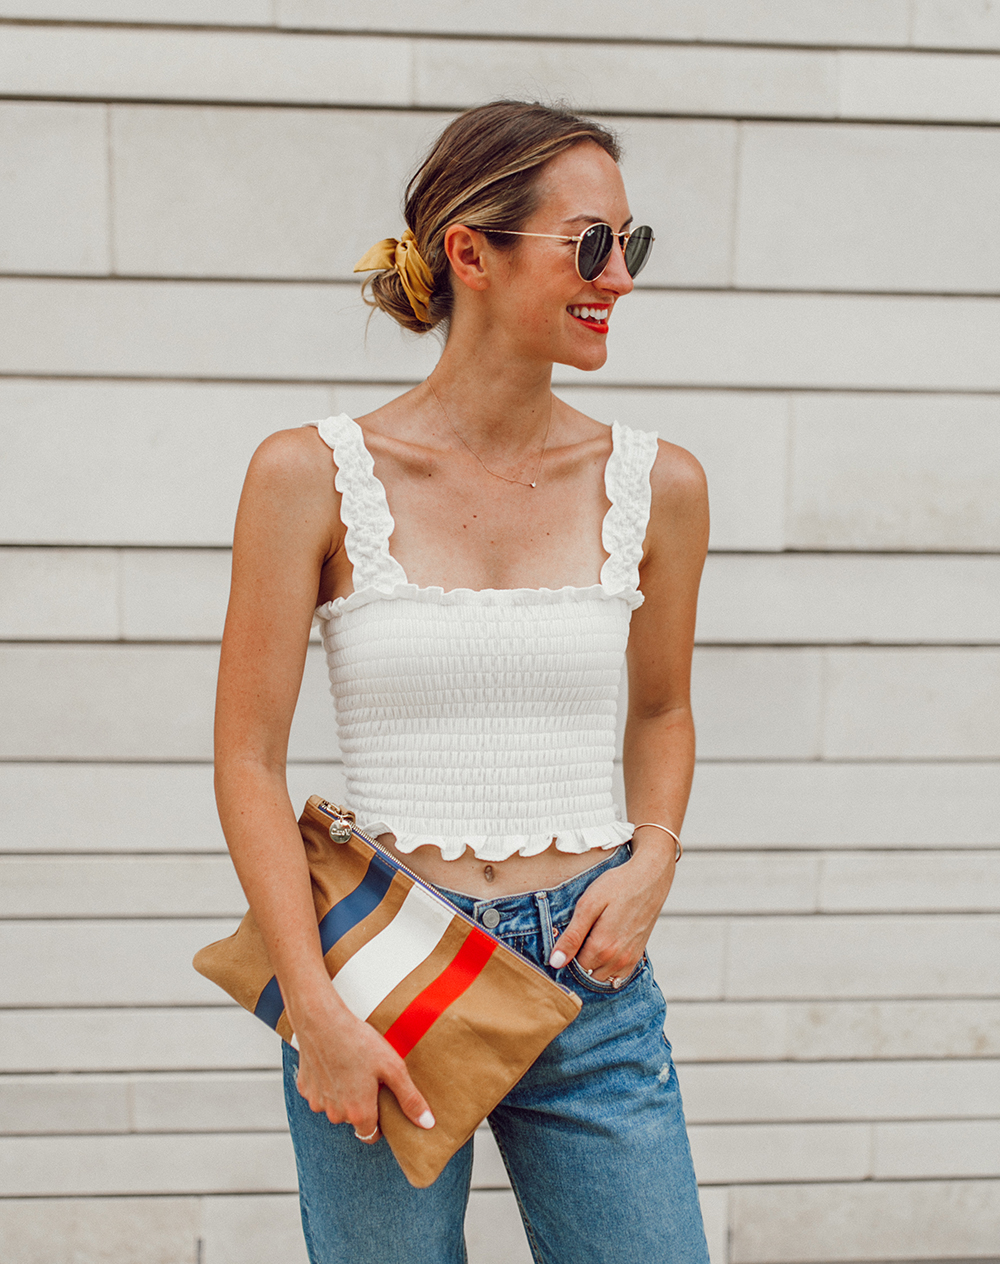 livvyland-blog-olivia-watson-austin-texas-fashion-style-blogger-reformation-tank-top-girlfriend-high-rise-jeans-hair-scarf-summer-outfit-1